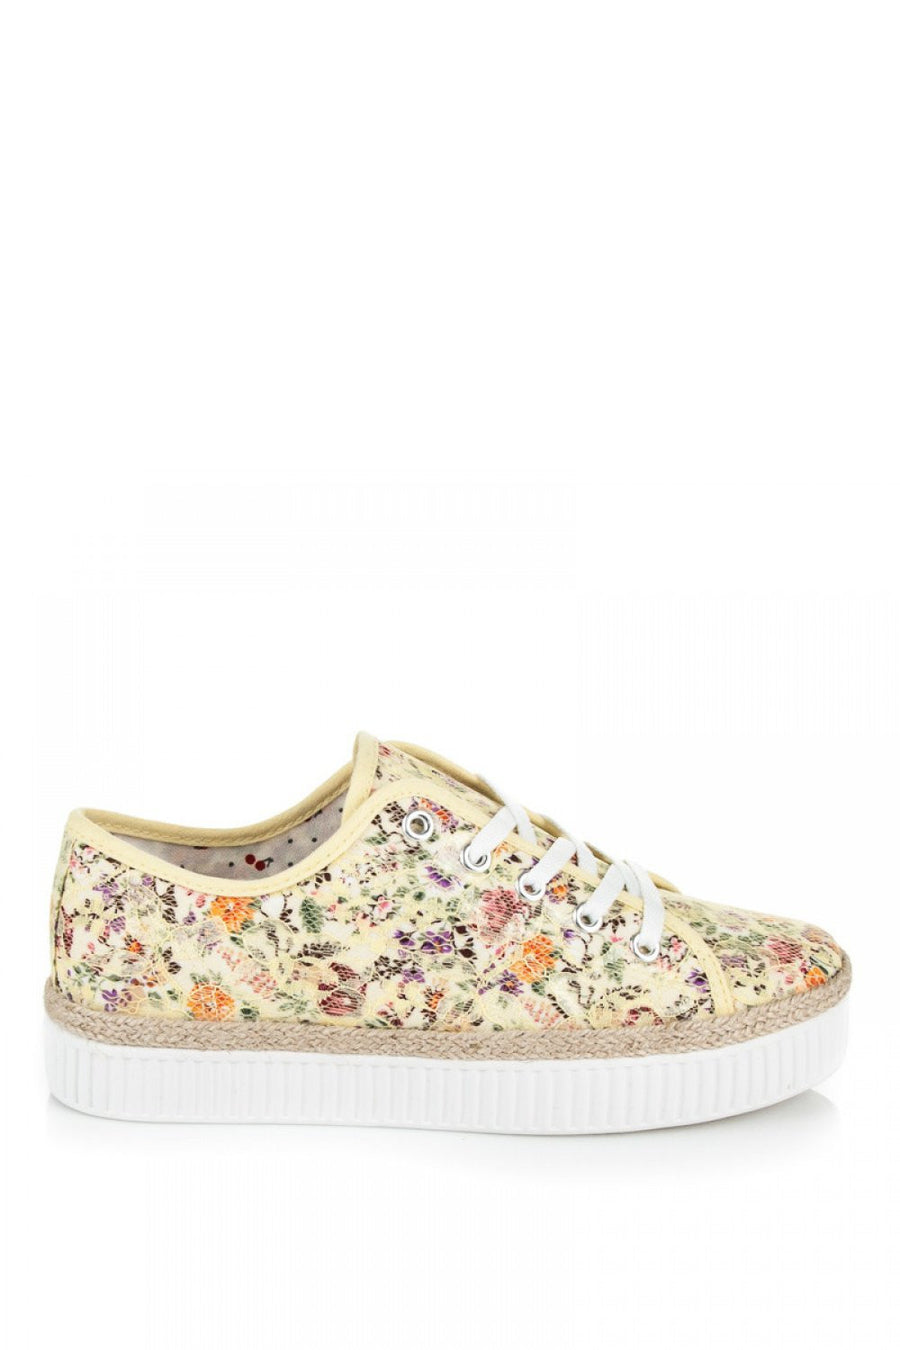 Espadrille 75663 Zoki-Women`s Athletic Shoes, Trainers, Sneakers-Zoki-Très Fancy